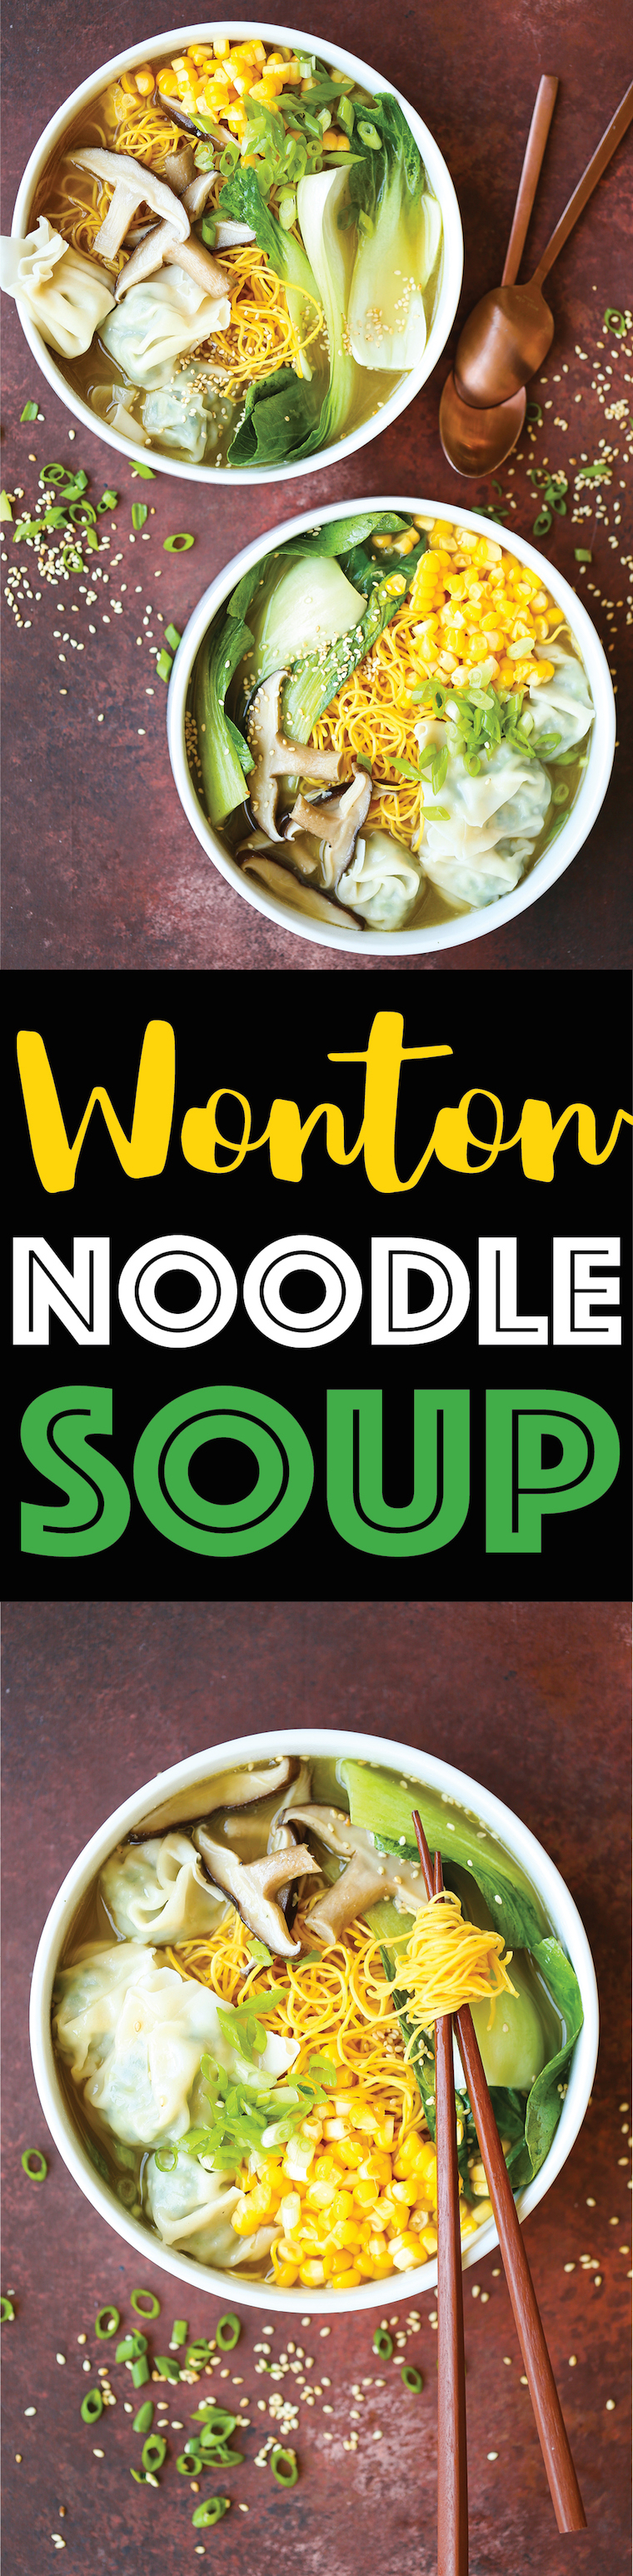 Wonton Noodle Soup - Yes, you can now make your favorite takeout noodle soup at home with THE BEST homemade wontons! The wontons are also freezer-friendly!